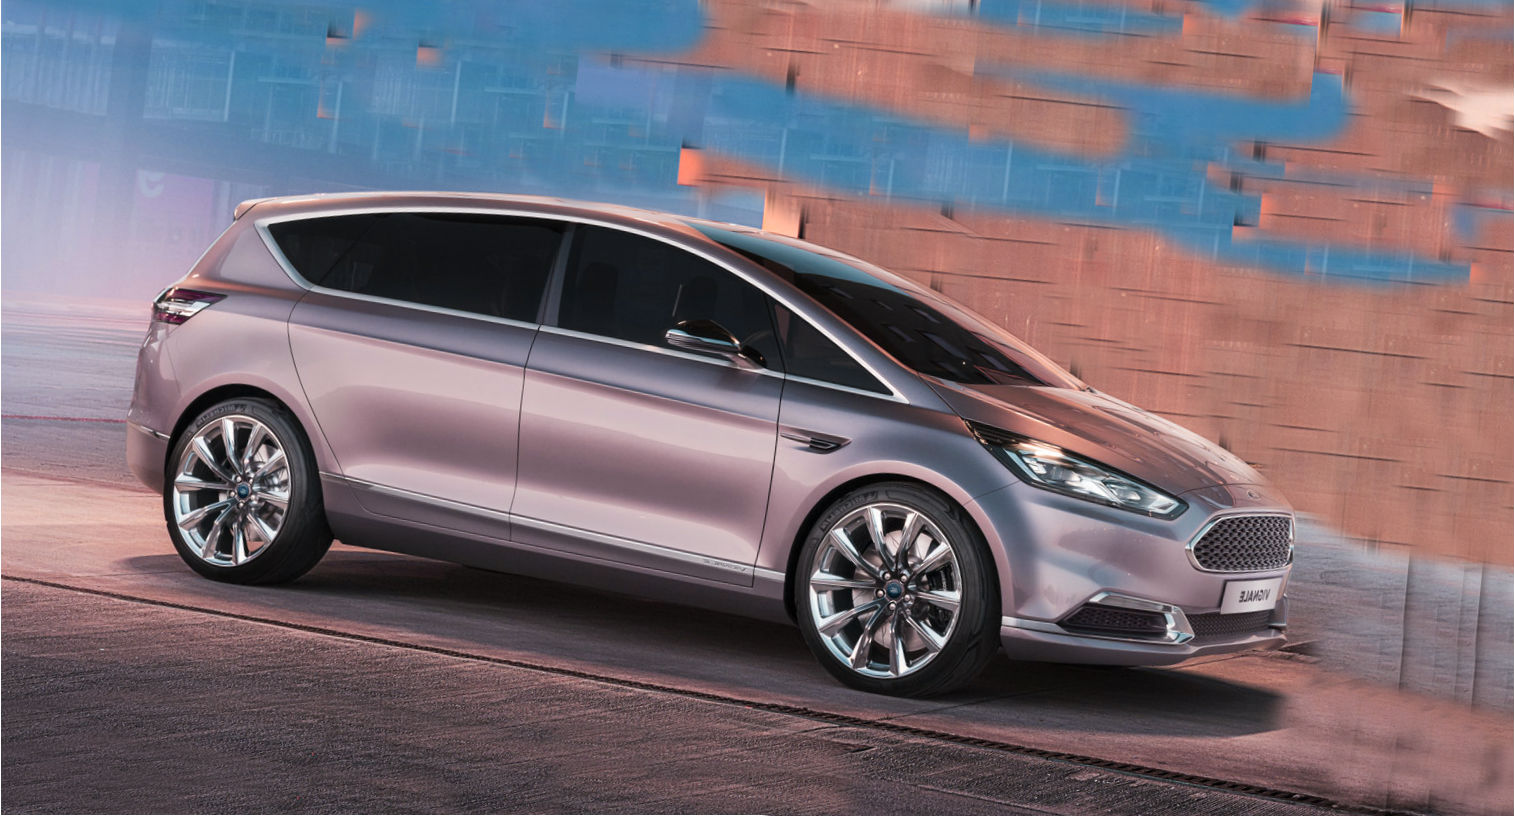 ford s max vignale concept 2014 reviews ford s max. Black Bedroom Furniture Sets. Home Design Ideas